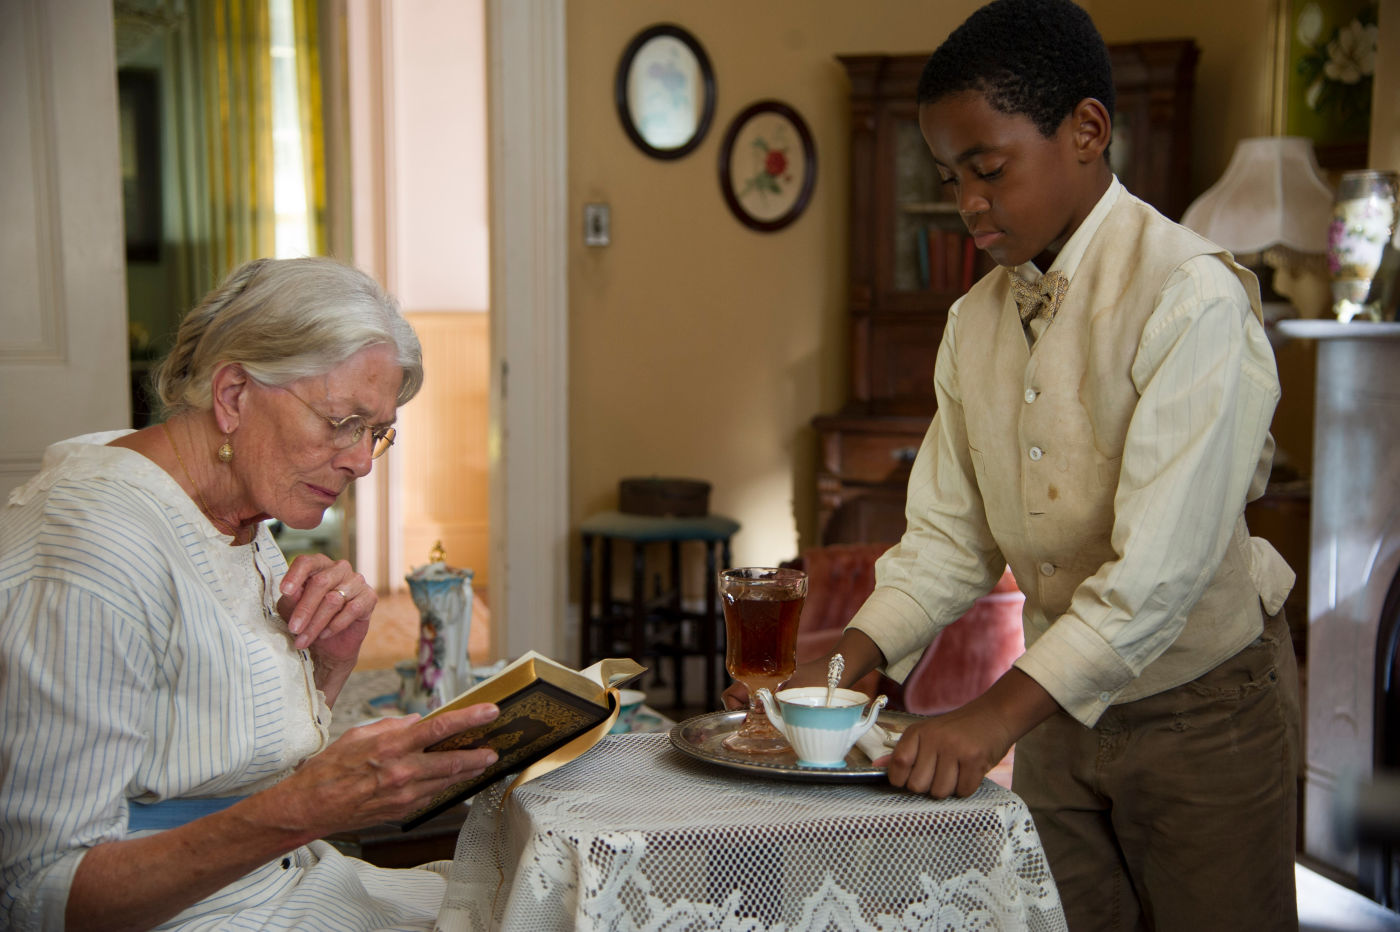 the history of the cruelty and unfairness to the african americans in the butler a movie by lee dani Reverend george lee, co-founder of belzoni, mississippi's naacp chapter and the first african american to register to vote in humphreys county since reconstruction, is considered one of the first martyrs of the civil rights movement.